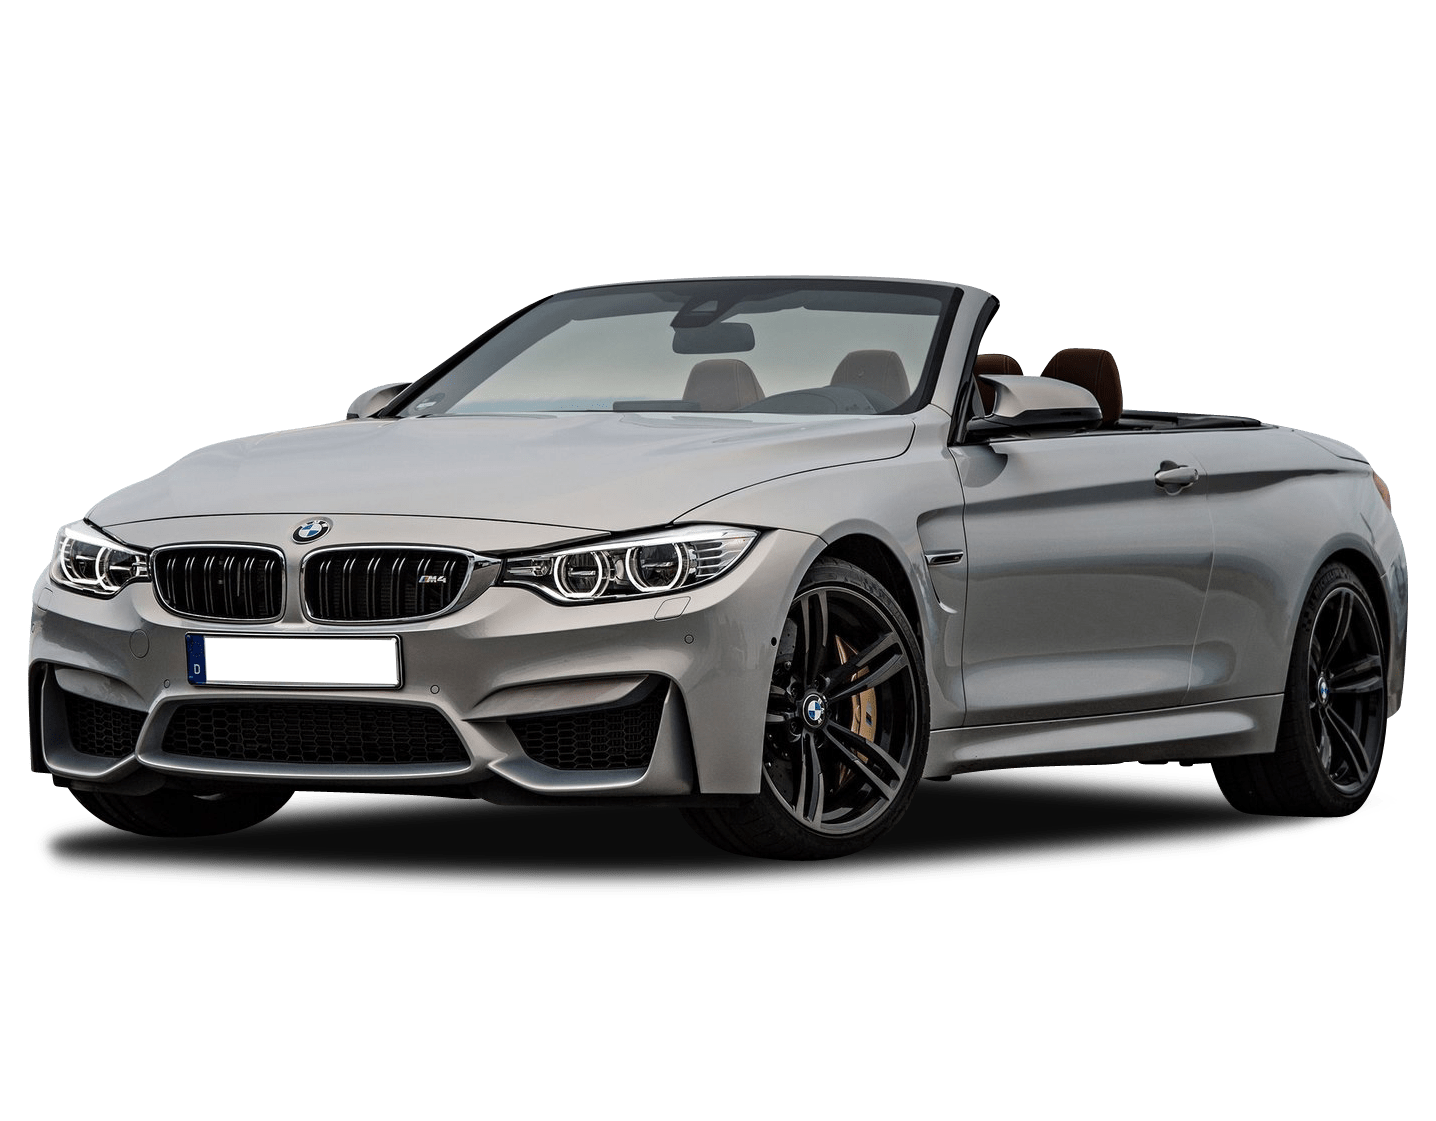 Bmw M4 Review Price Colours For Sale Specs Models Carsguide